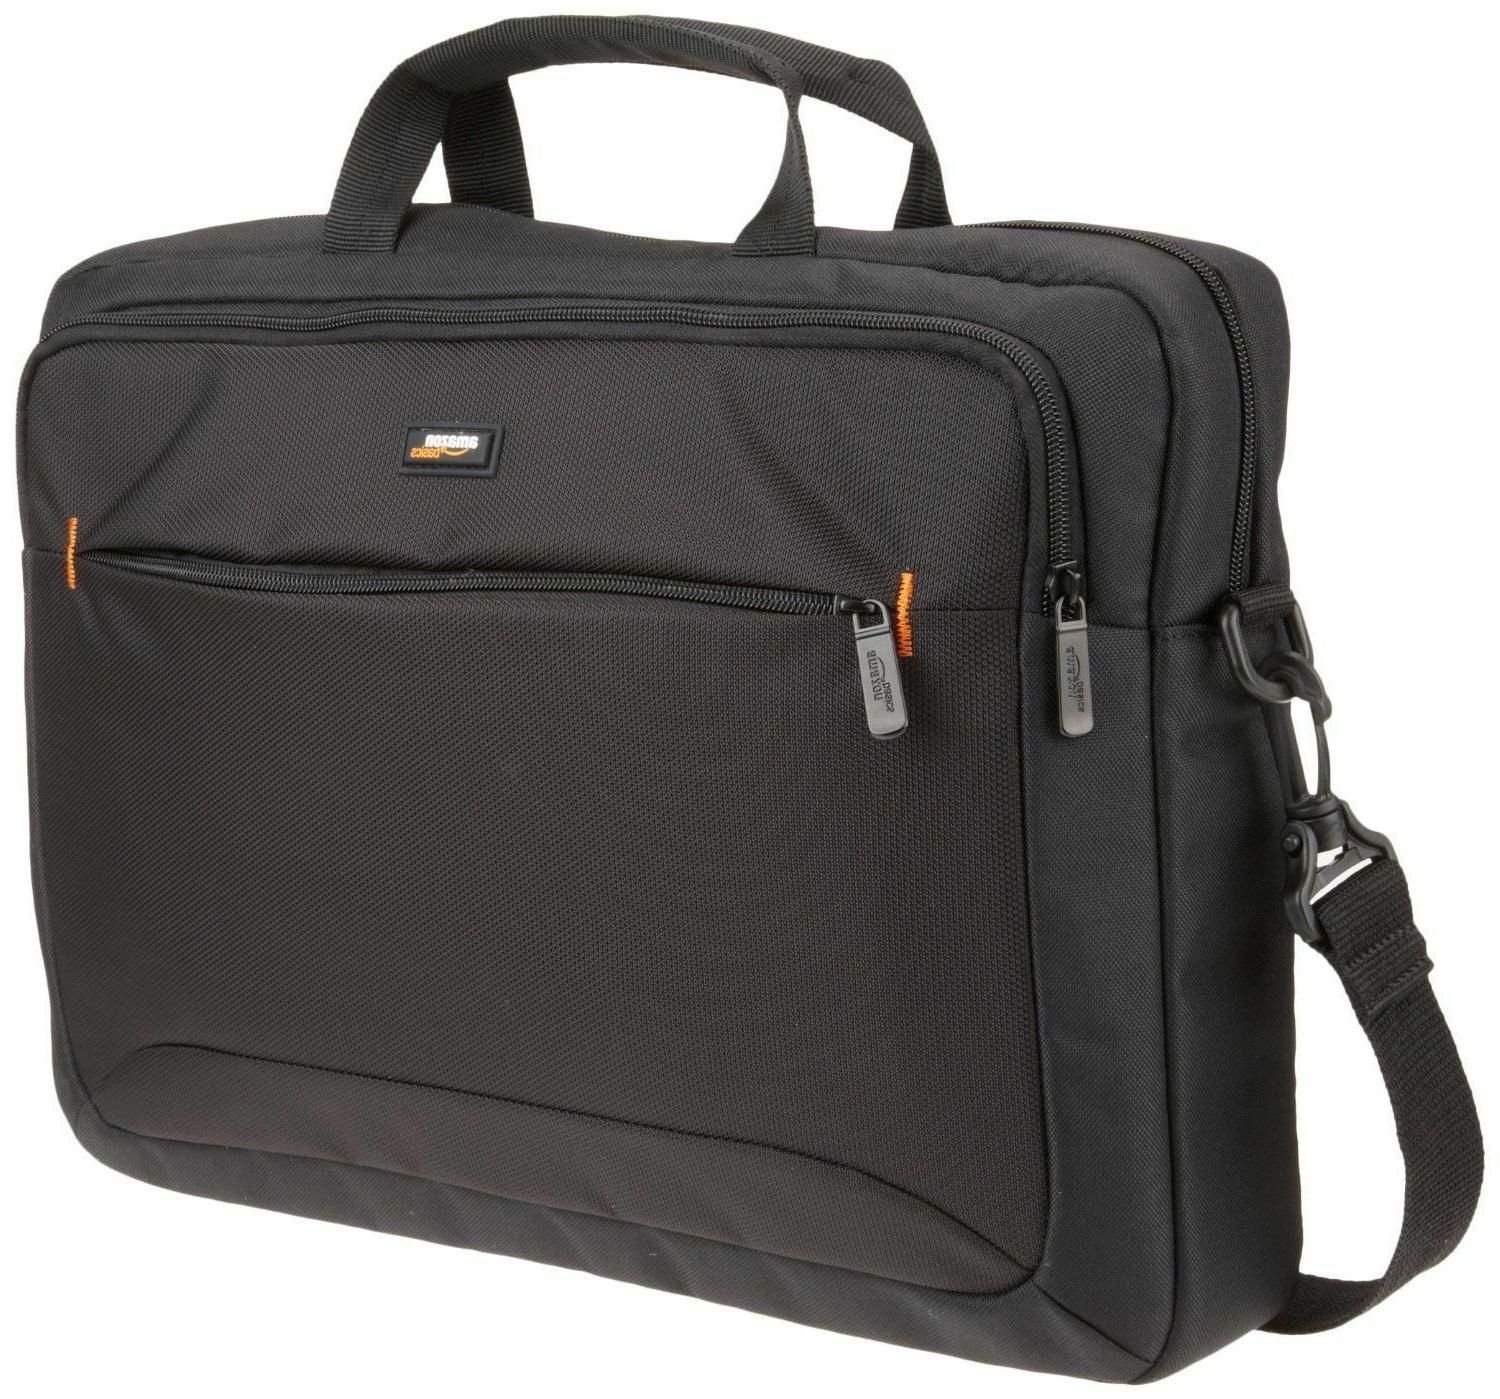 AmazonBasics 15.6-Inch Laptop and Tablet Bag - Perfect For C